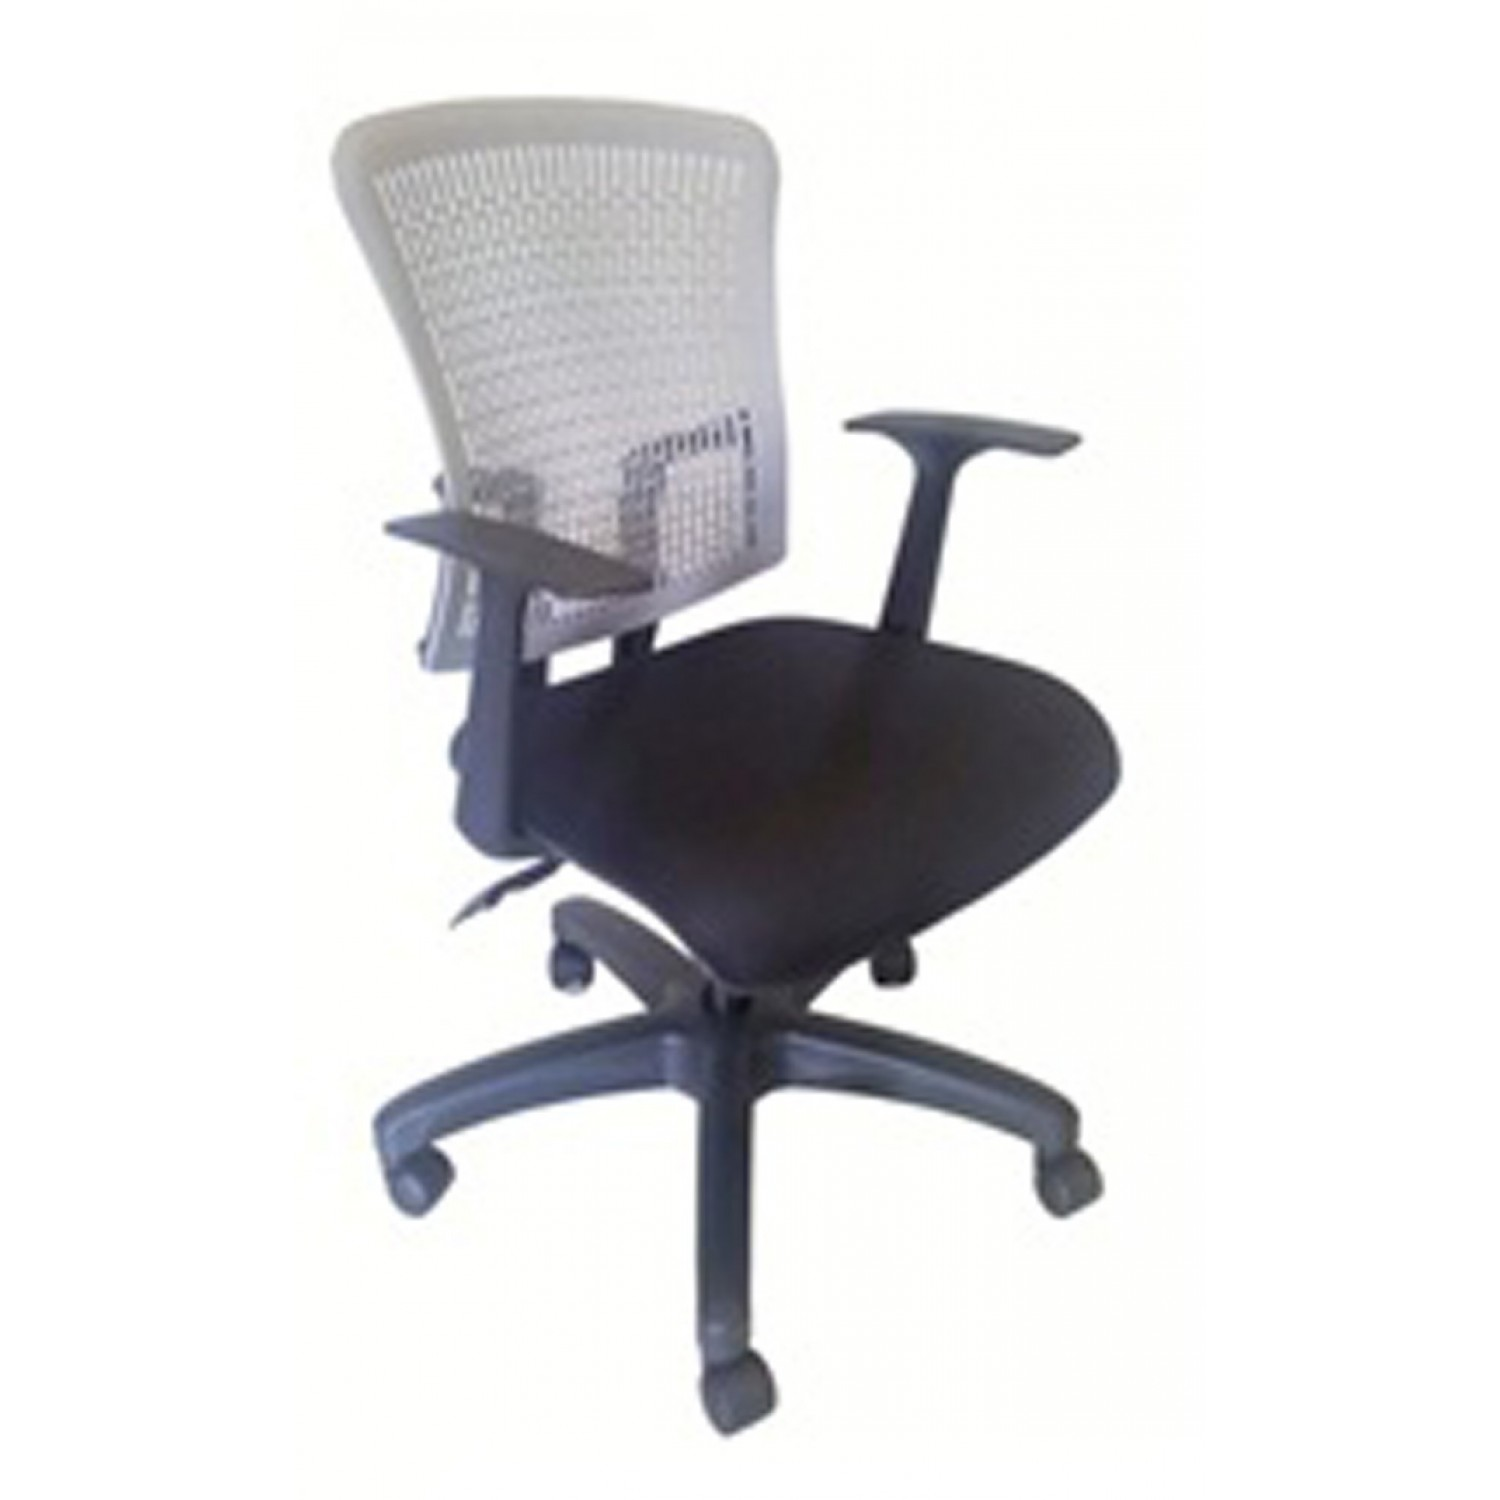 Retro office chair office furniture since 1990 - Retro office desk ...